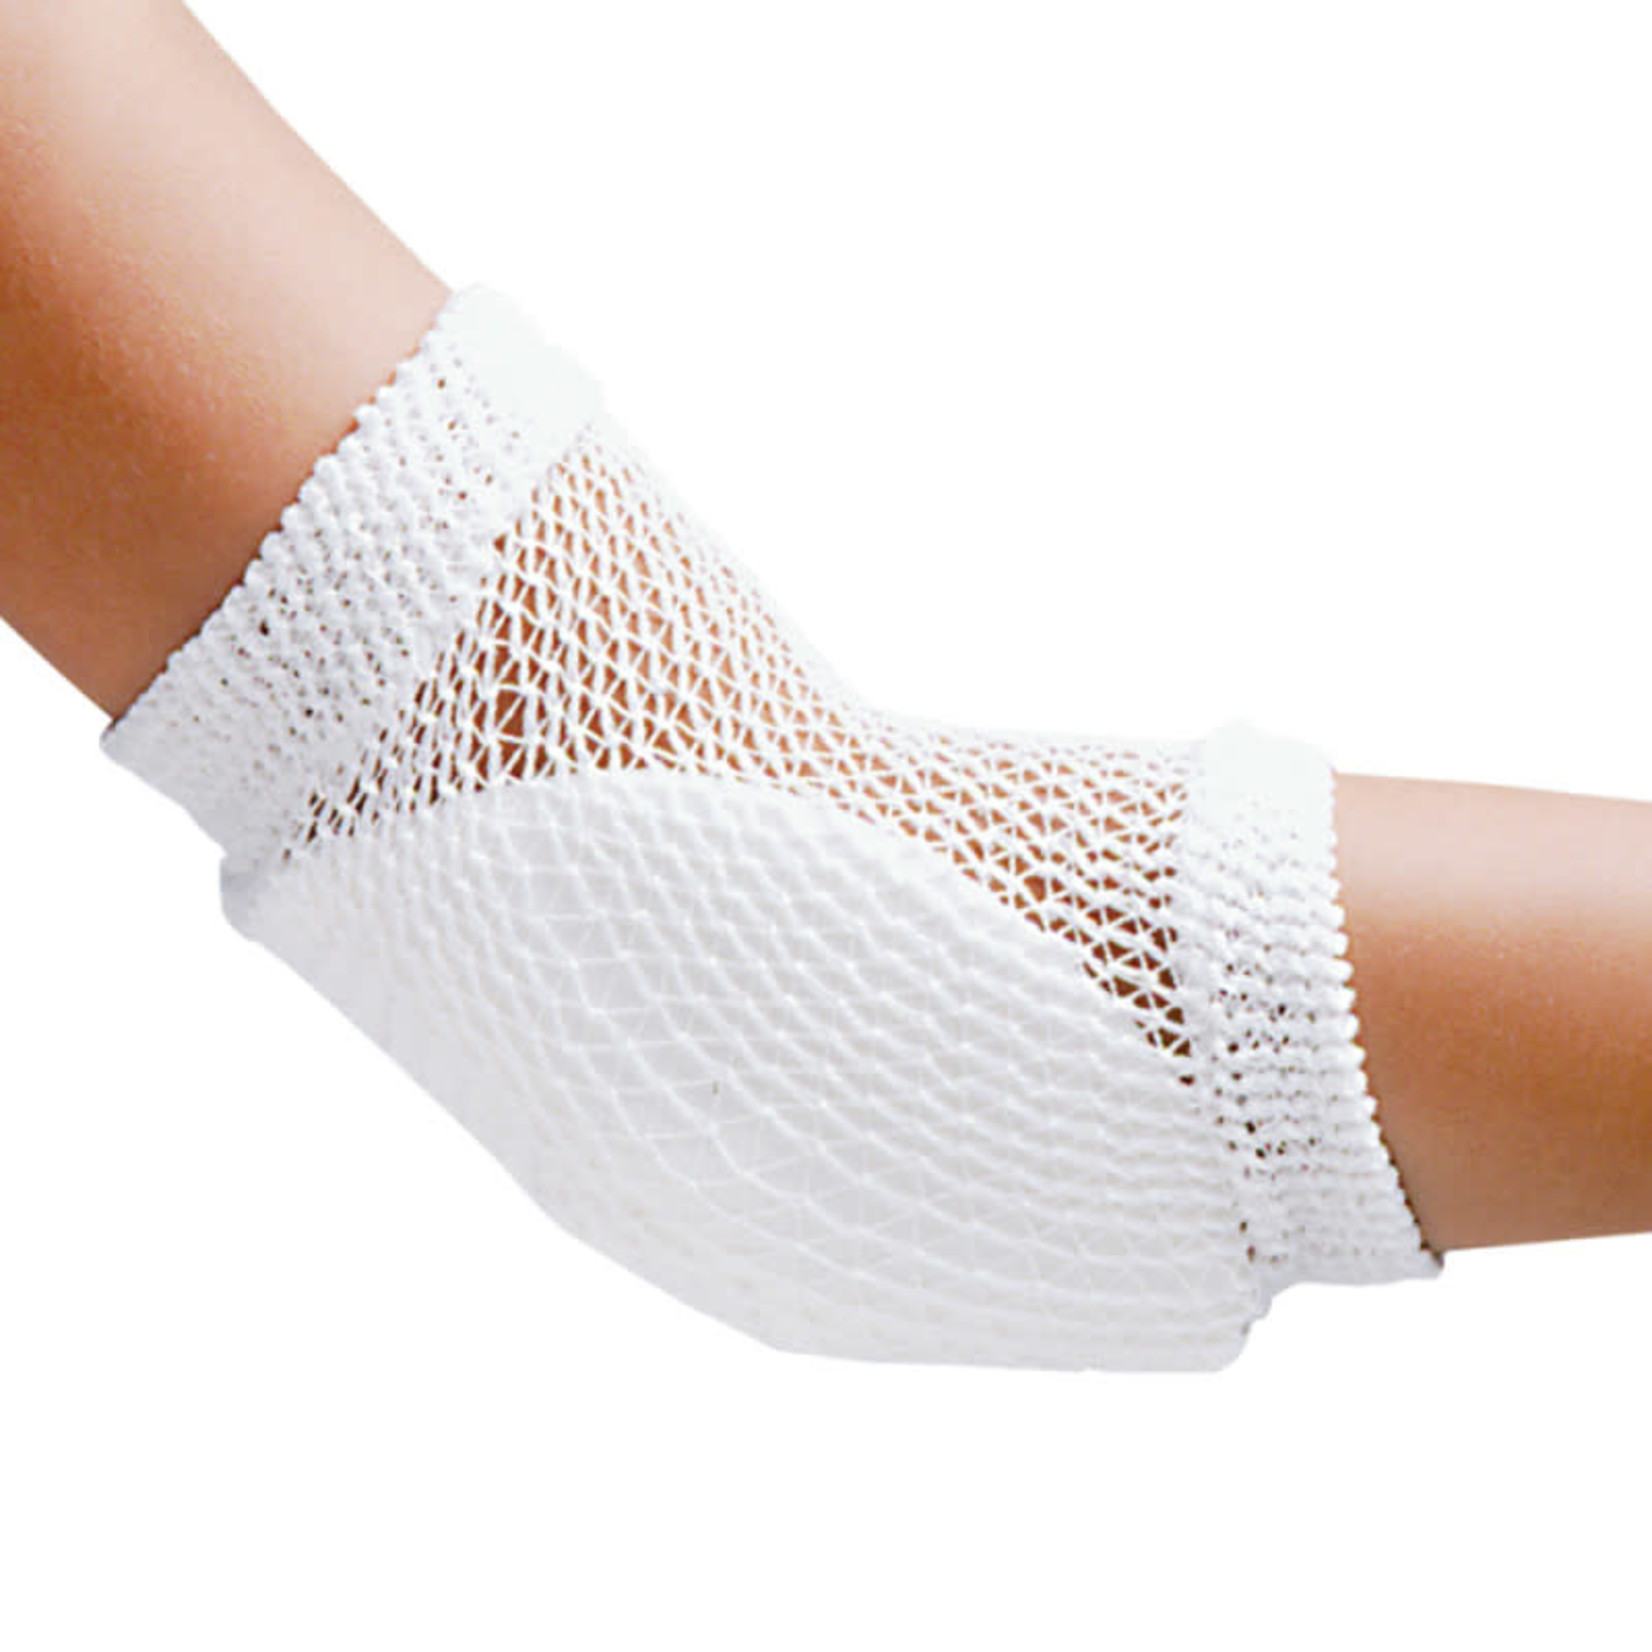 FLA Orthopedics HEEL AND ELBOW PROTECTOR OPEN MESH RETAIL WHITE UN